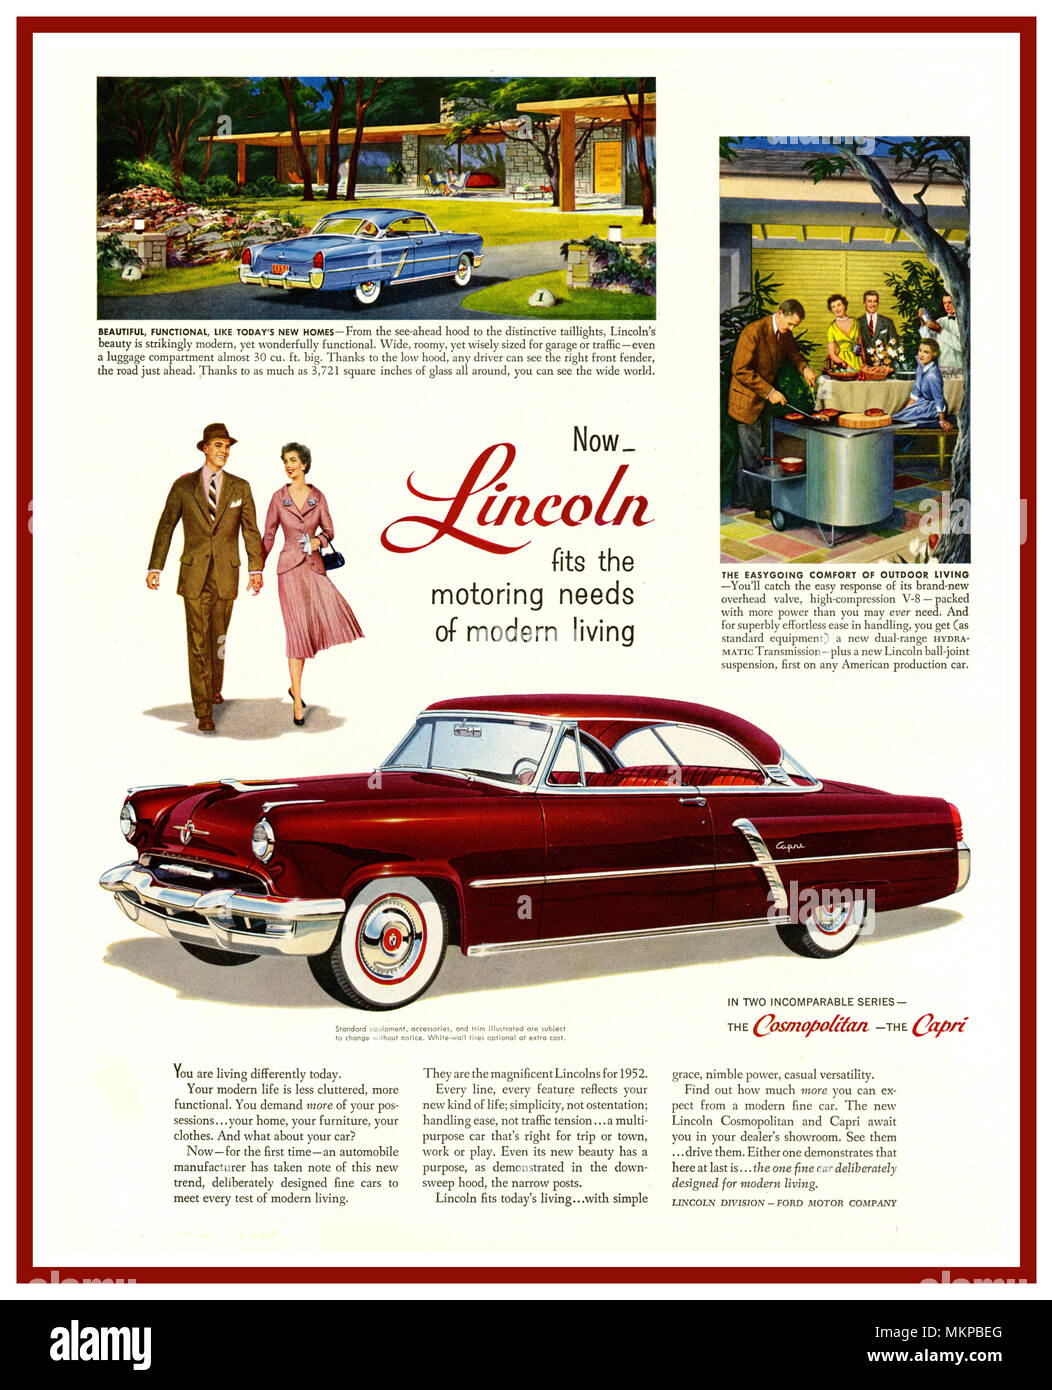 1952 American Lincoln Motor Car Press Advertisement For Luxury